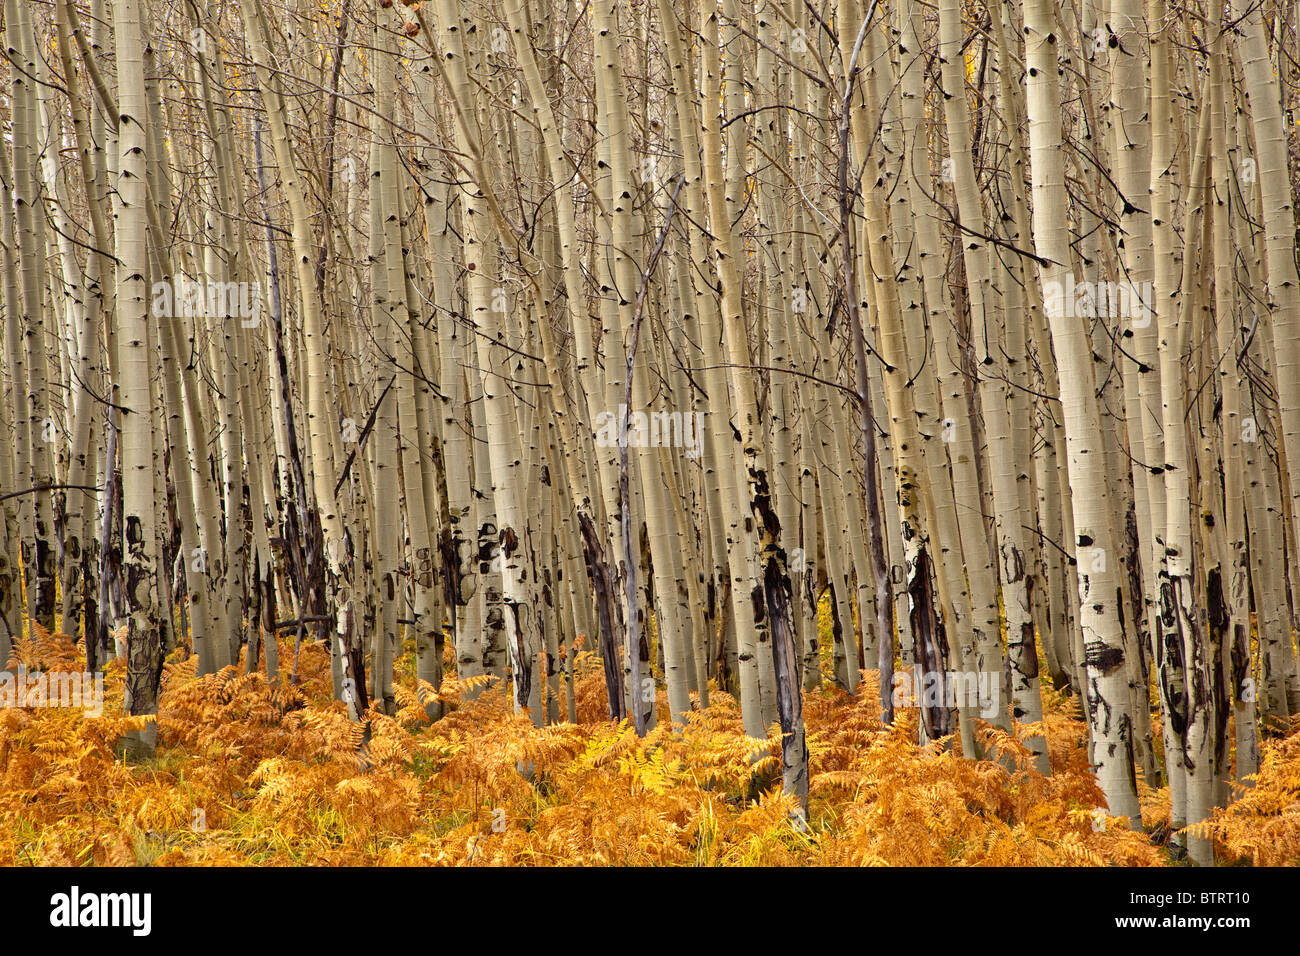 Grove of aspen trees with understory of ferns, autumn on the San Francisco Peaks, Coconino National Forest, USA - Stock Image